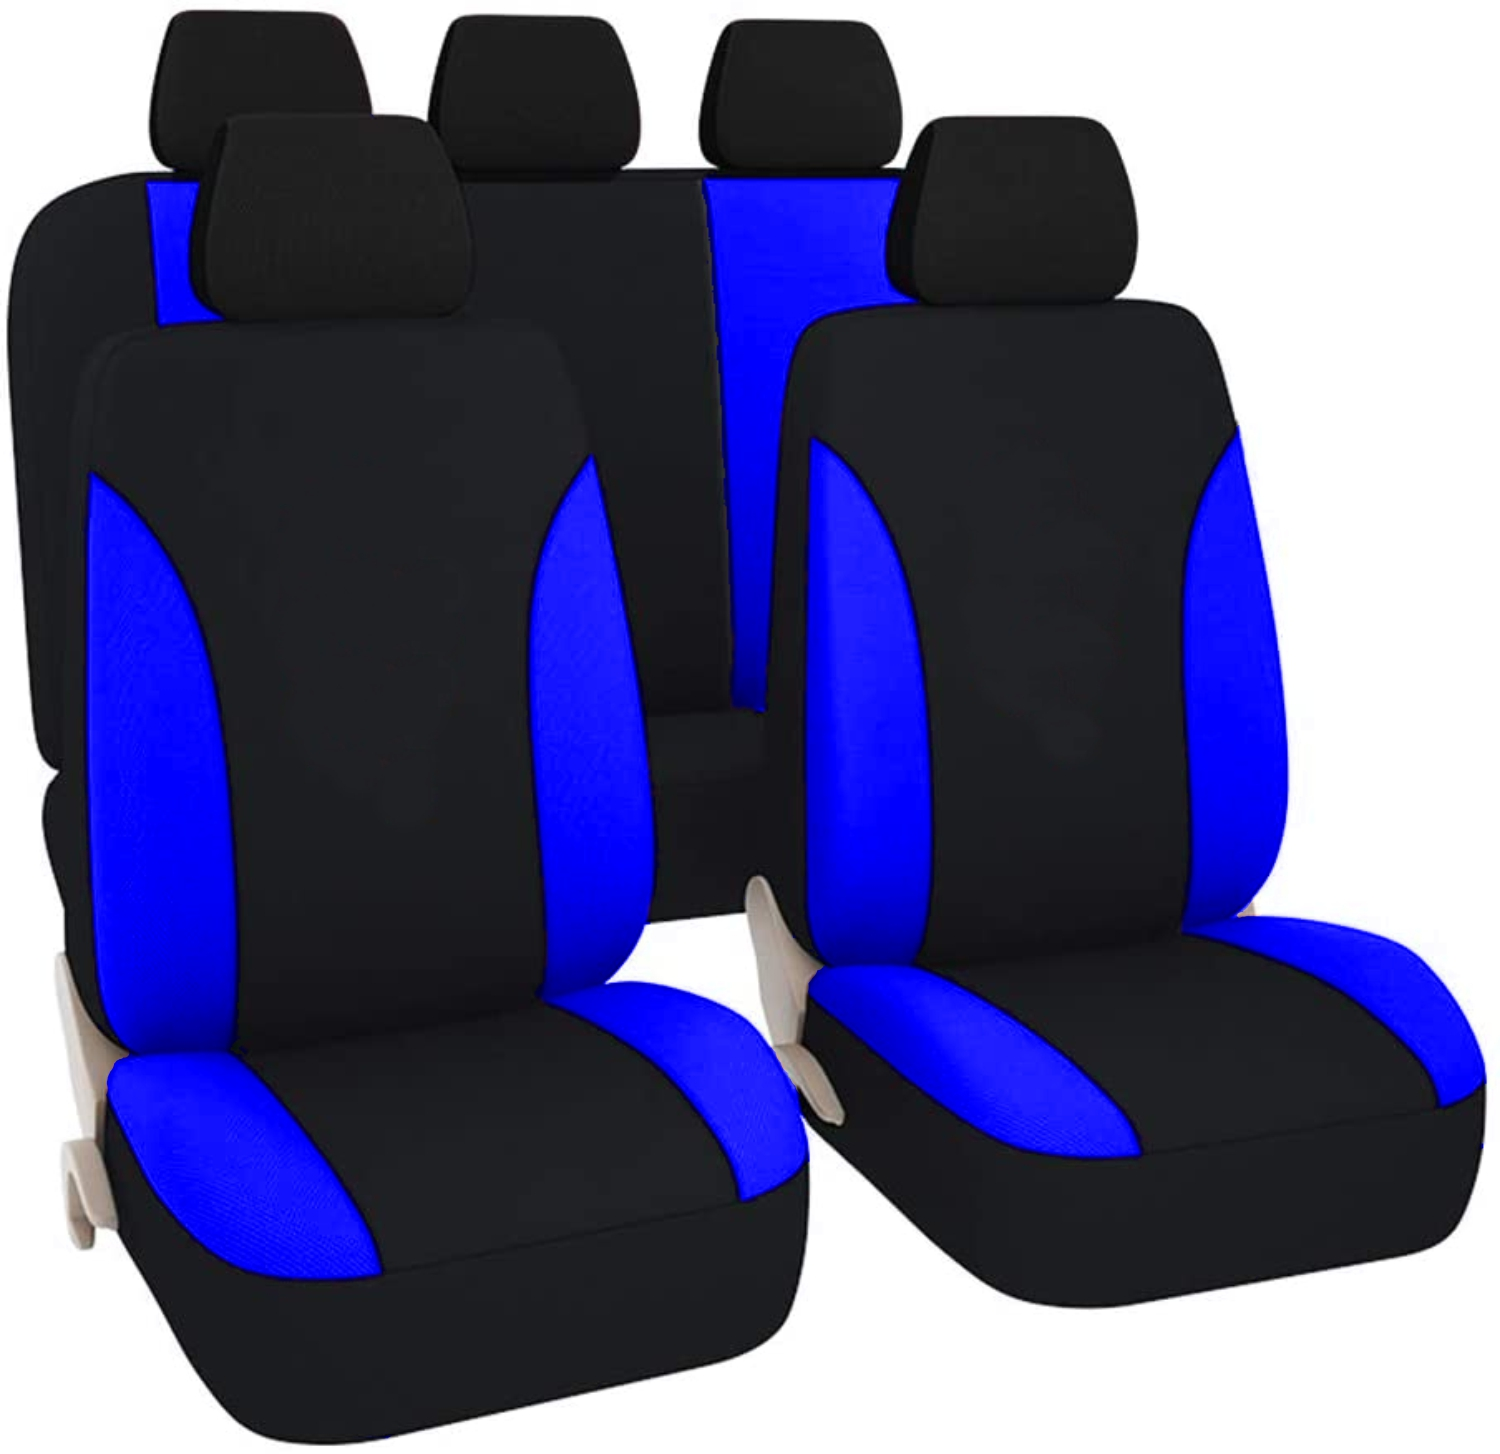 SB104 - Car Seat Cover set protector with SIDE AIRBAG BLACK / BLUE